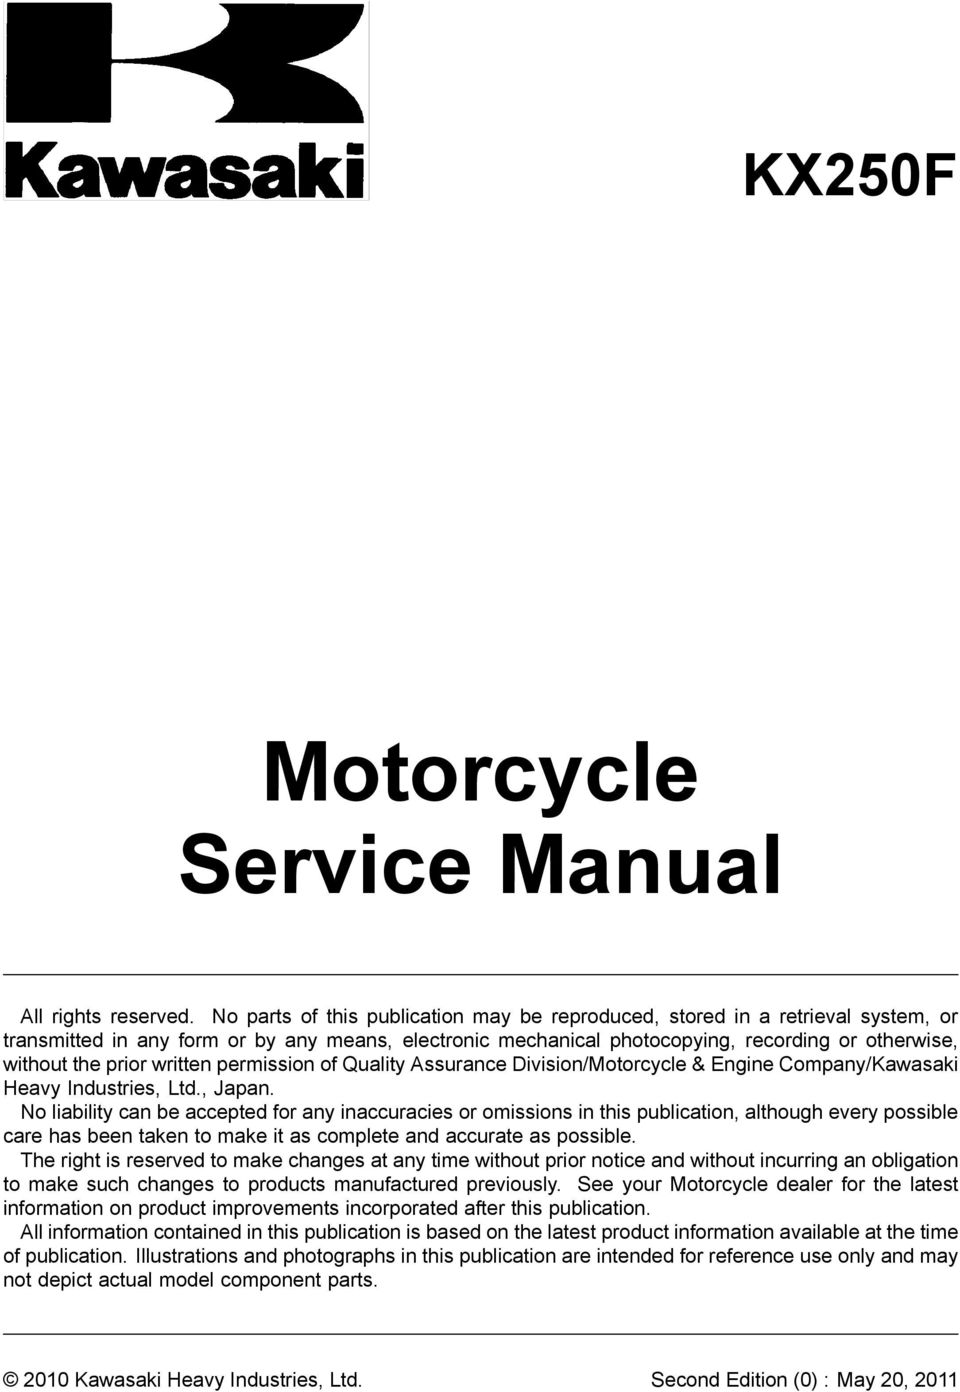 written permission of Quality Assurance Division/Motorcycle & Engine Company/Kawasaki Heavy Industries, Ltd., Japan.